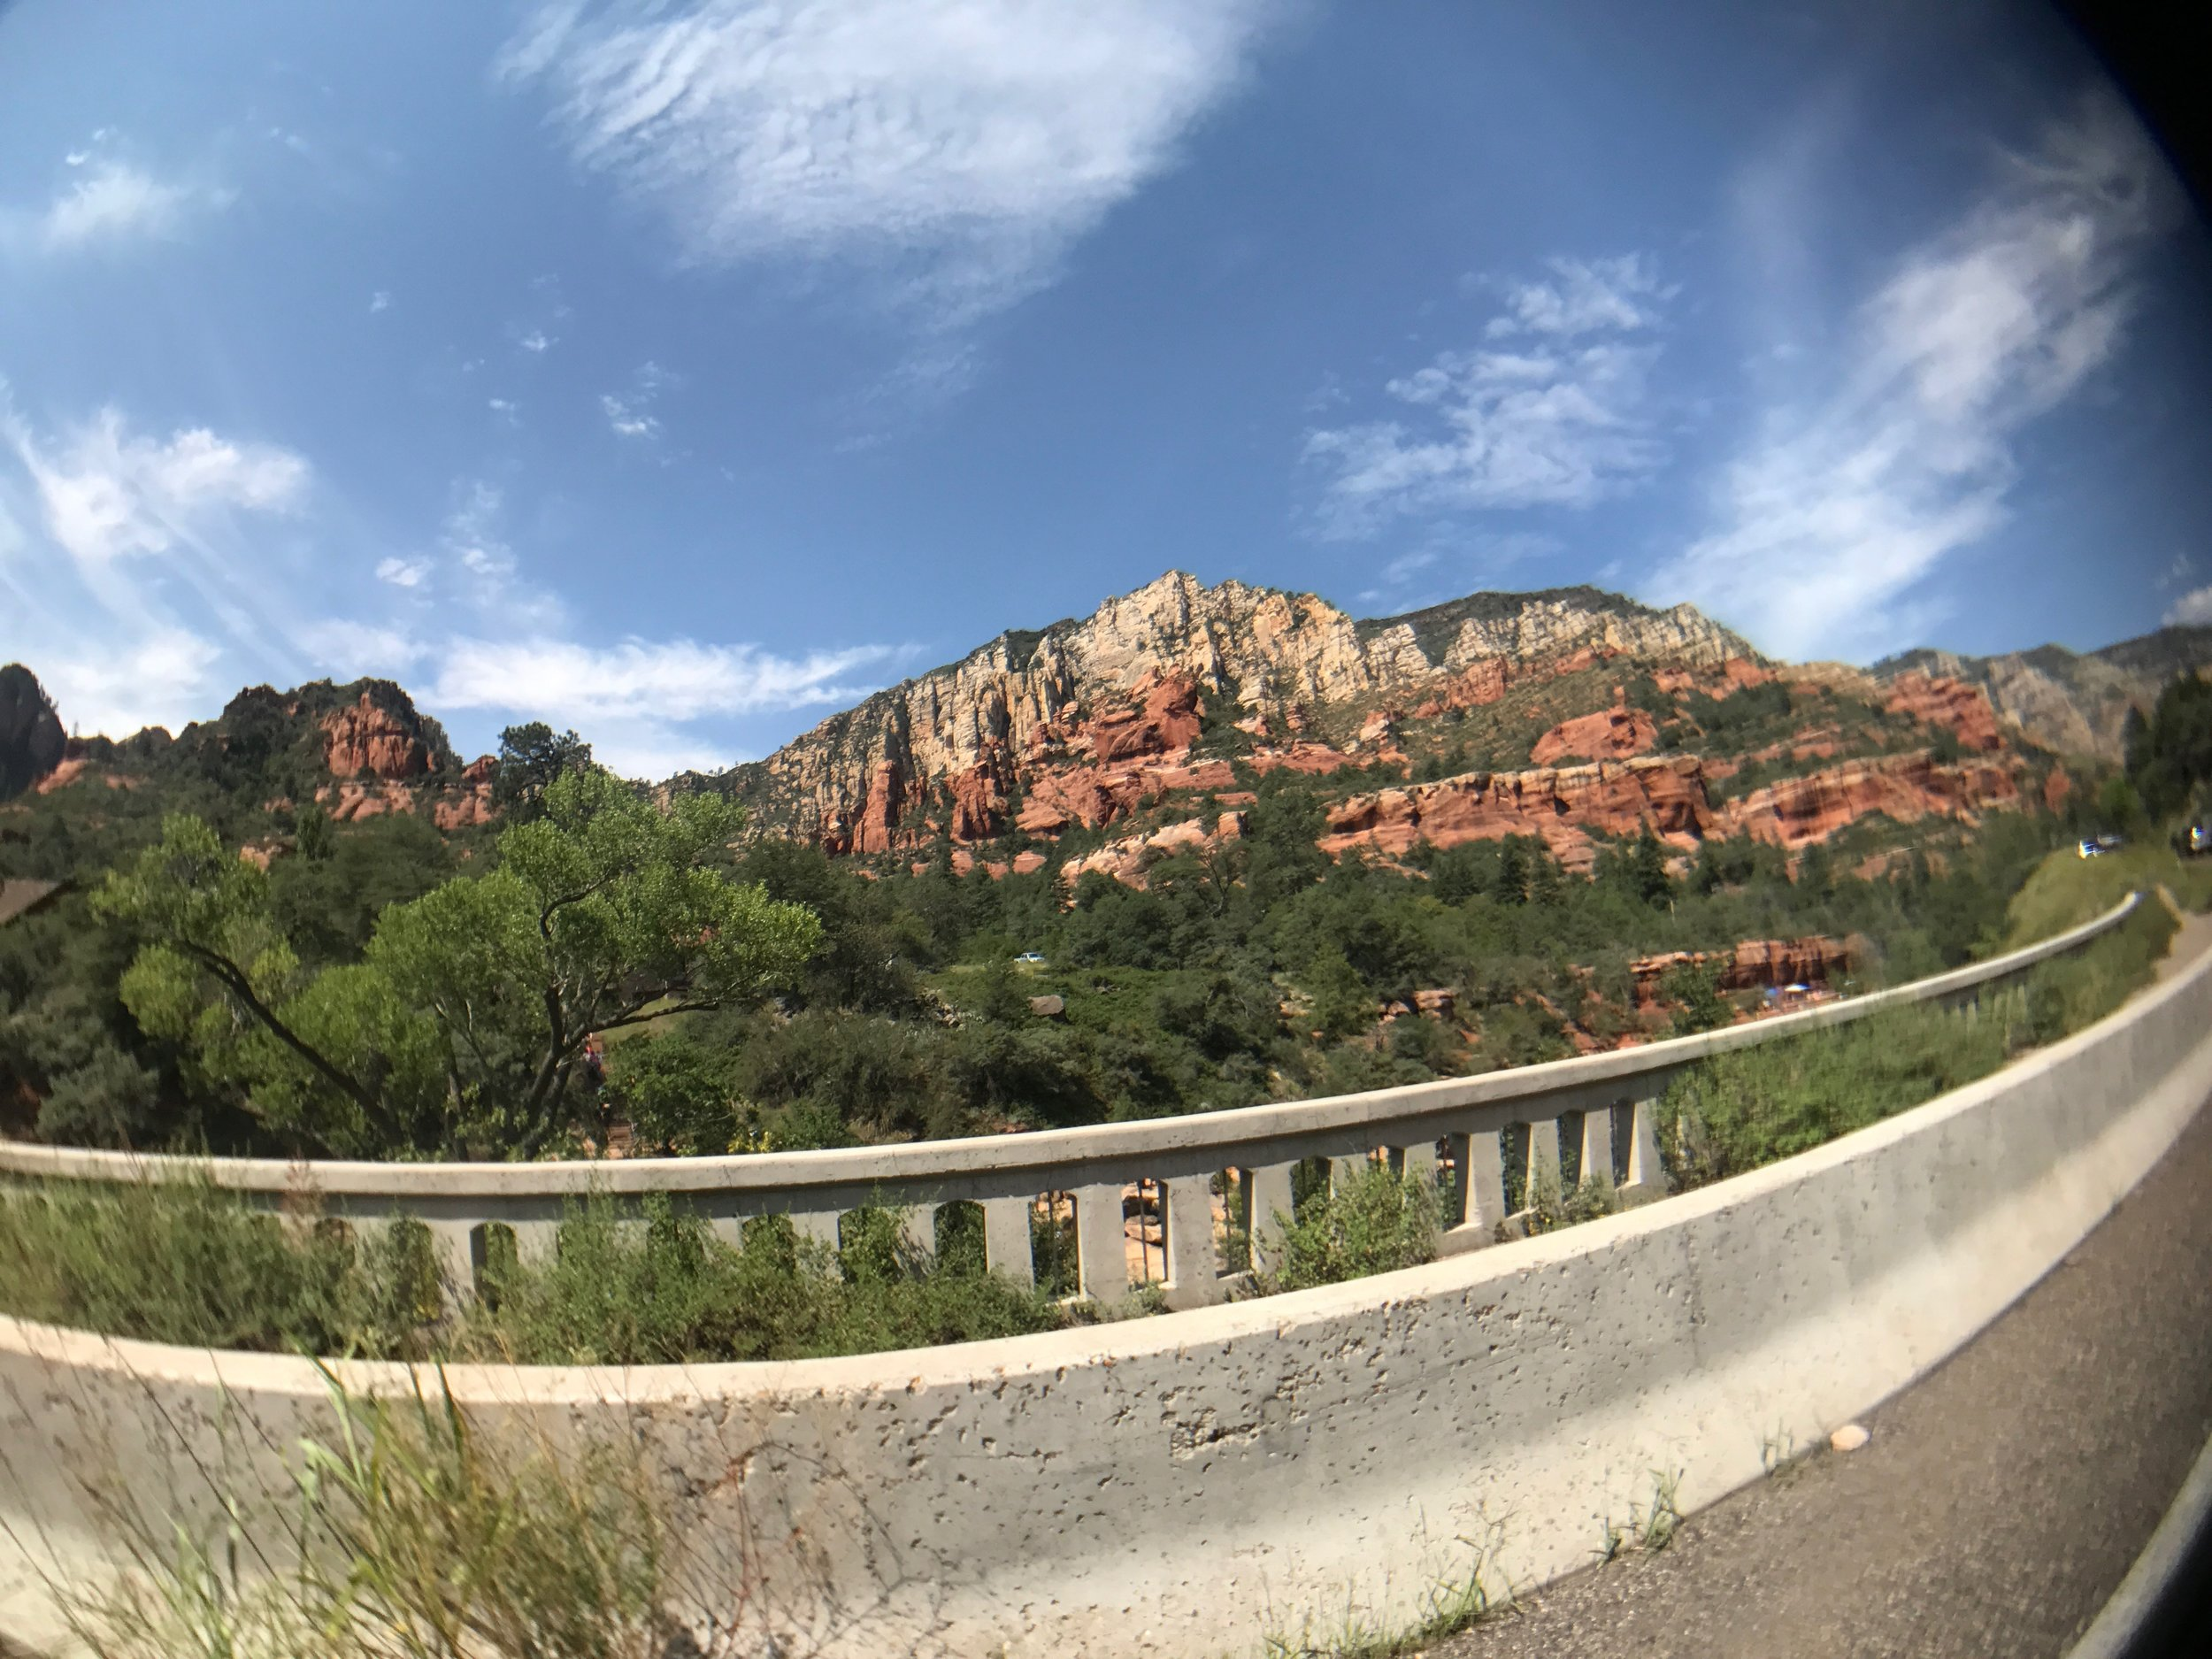 On our drive from Flagstaff to Sedona, AZ